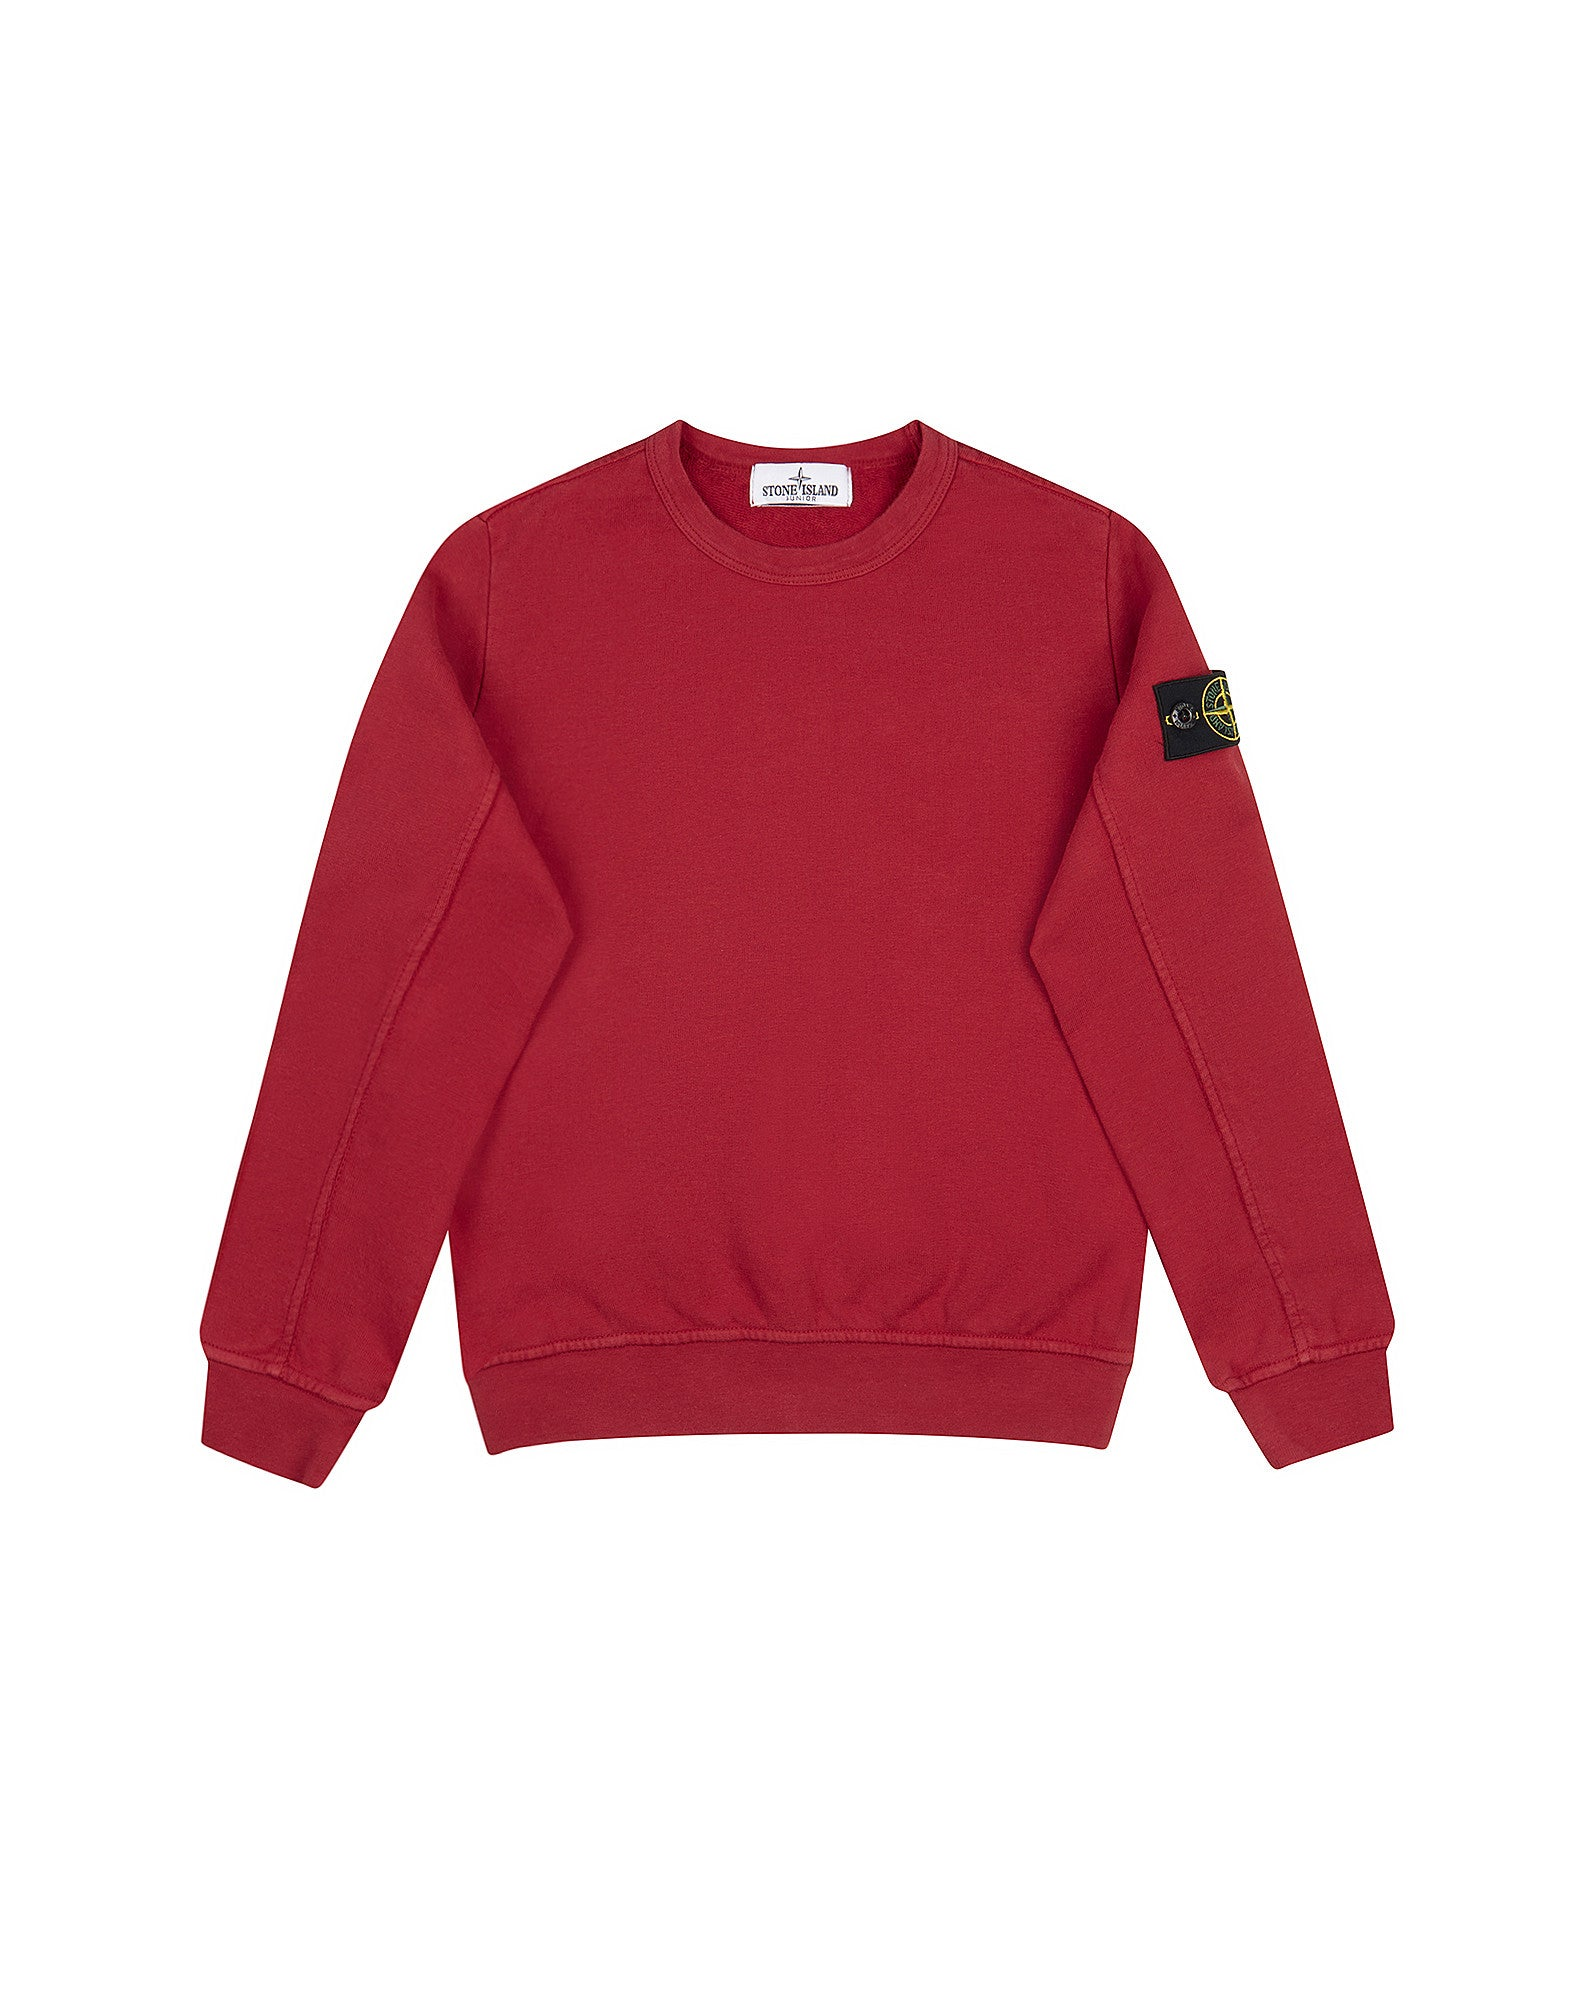 61240 Crew Neck Sweatshirt in Pink